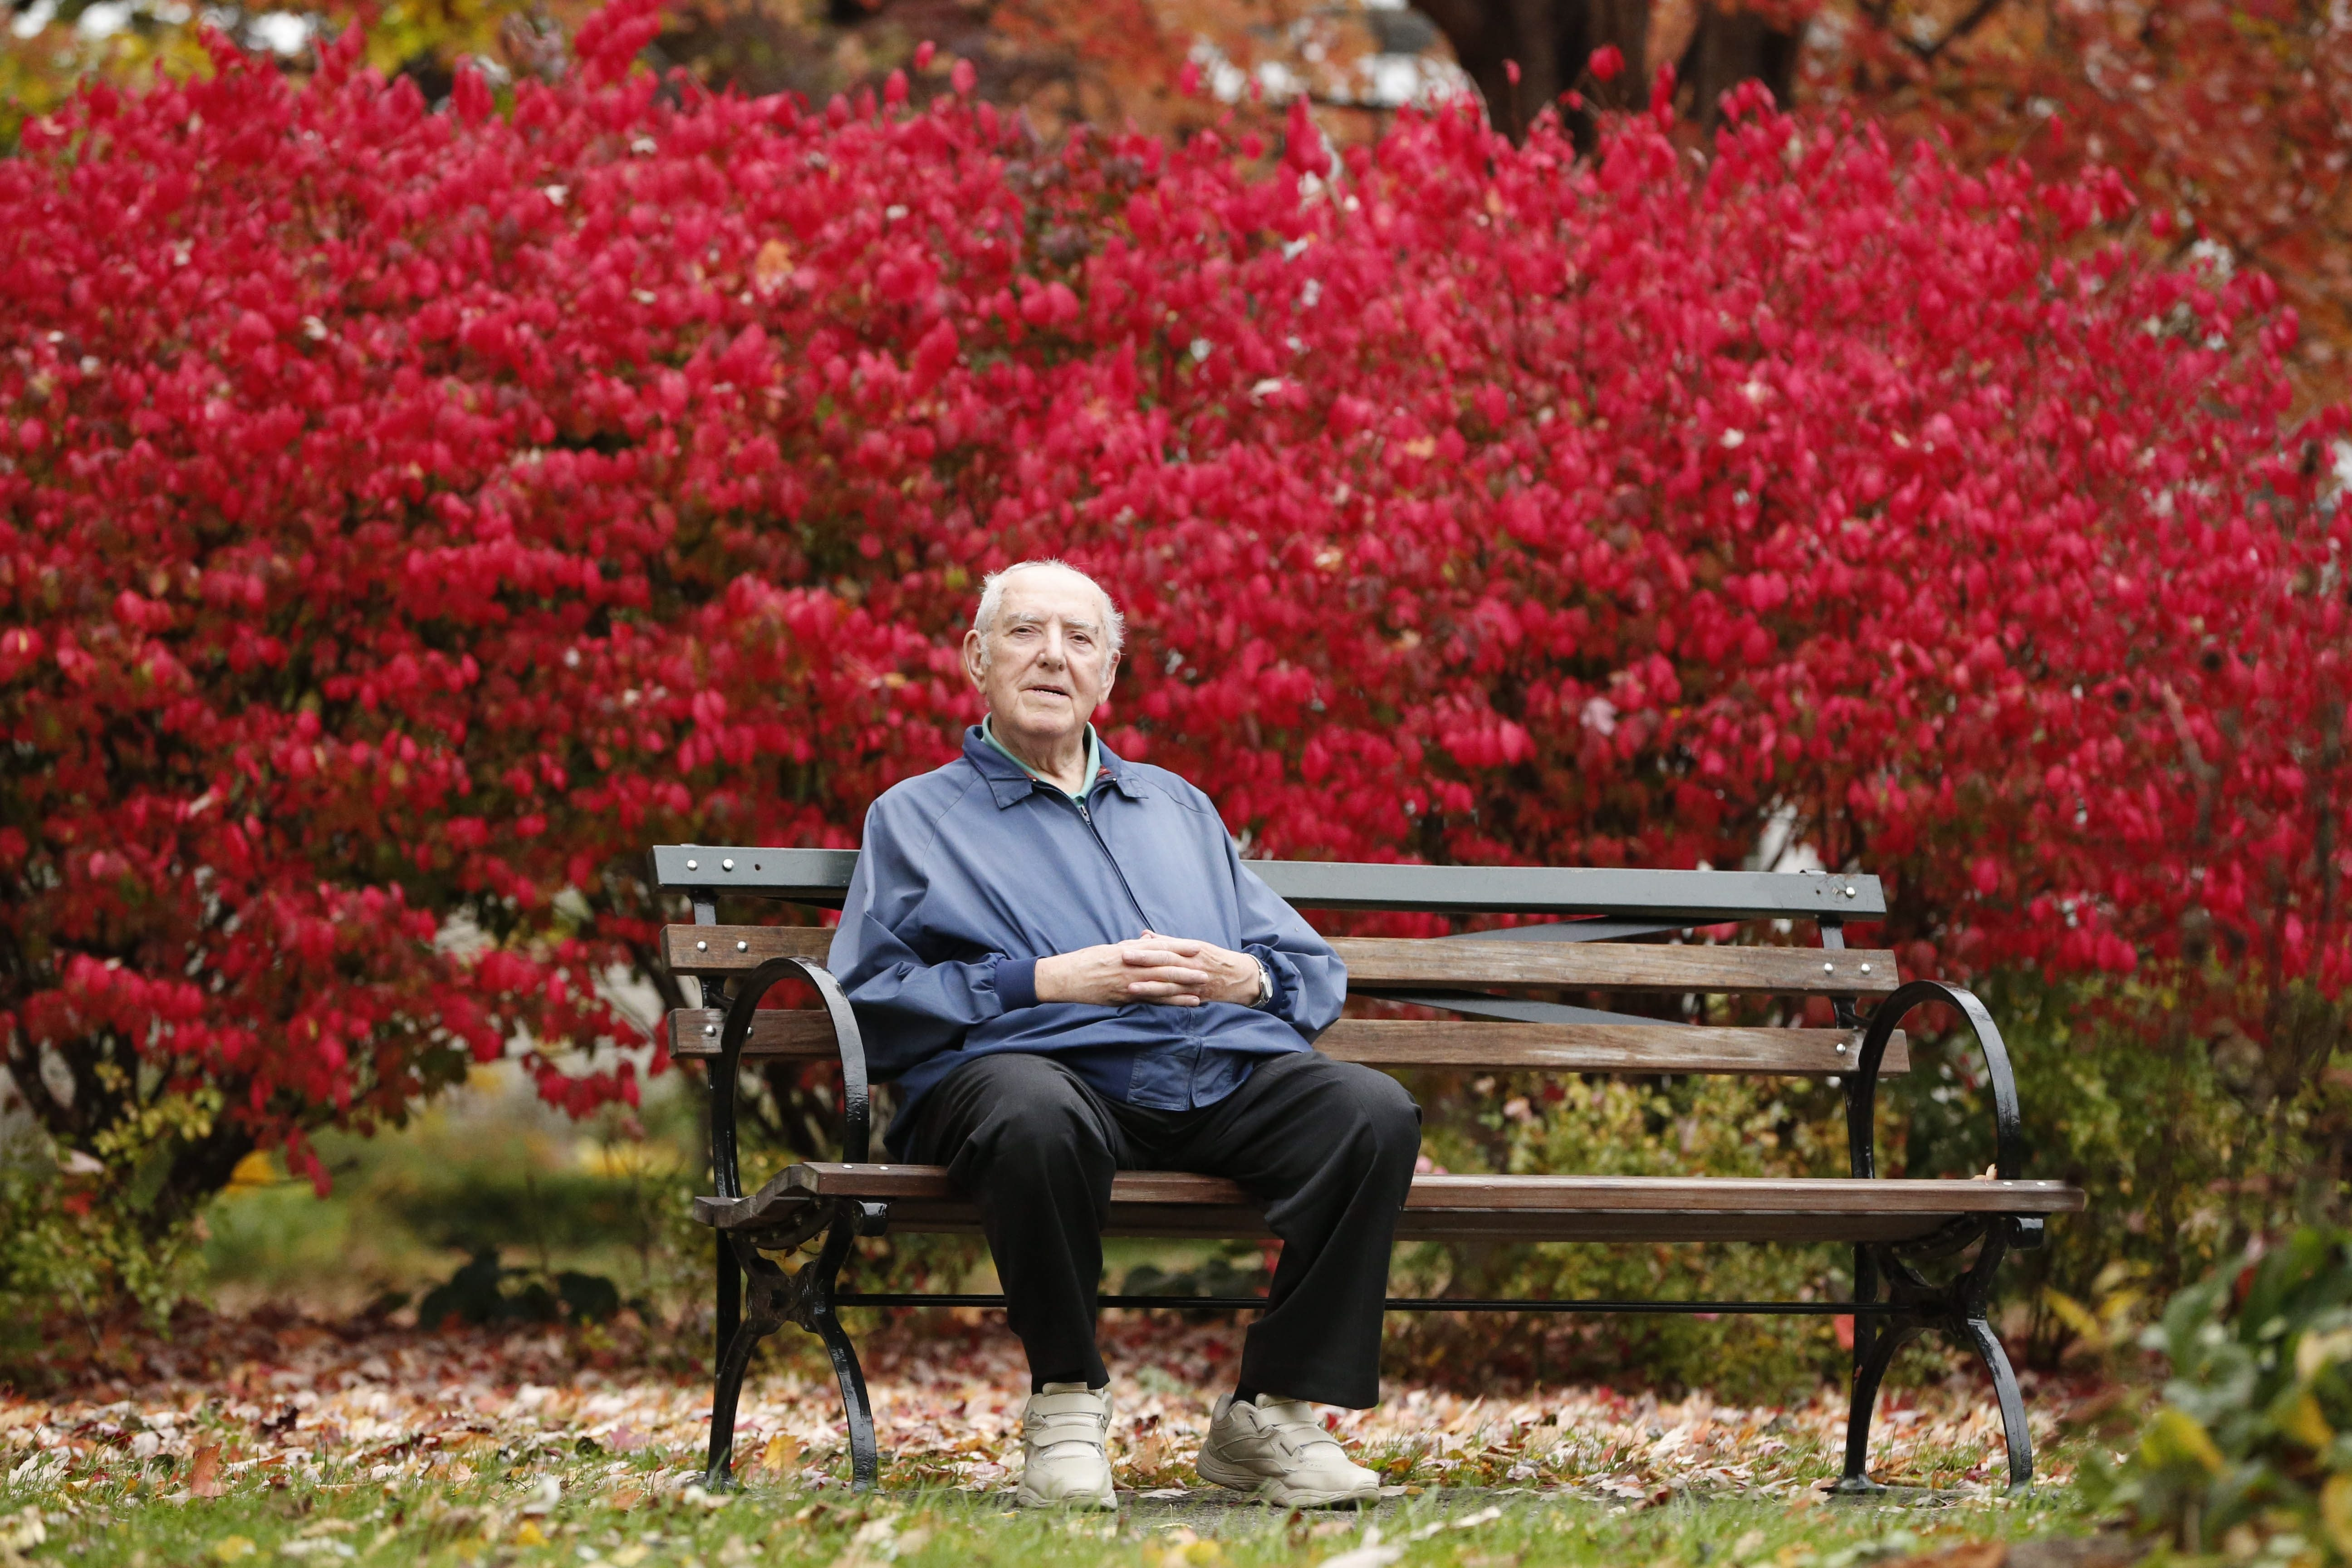 Chris Marinaccio enjoys the warm temperatures and colorful fall scenery from a bench in front of blazing red foliage in Buffalo's Symphony Circle on Tuesday.